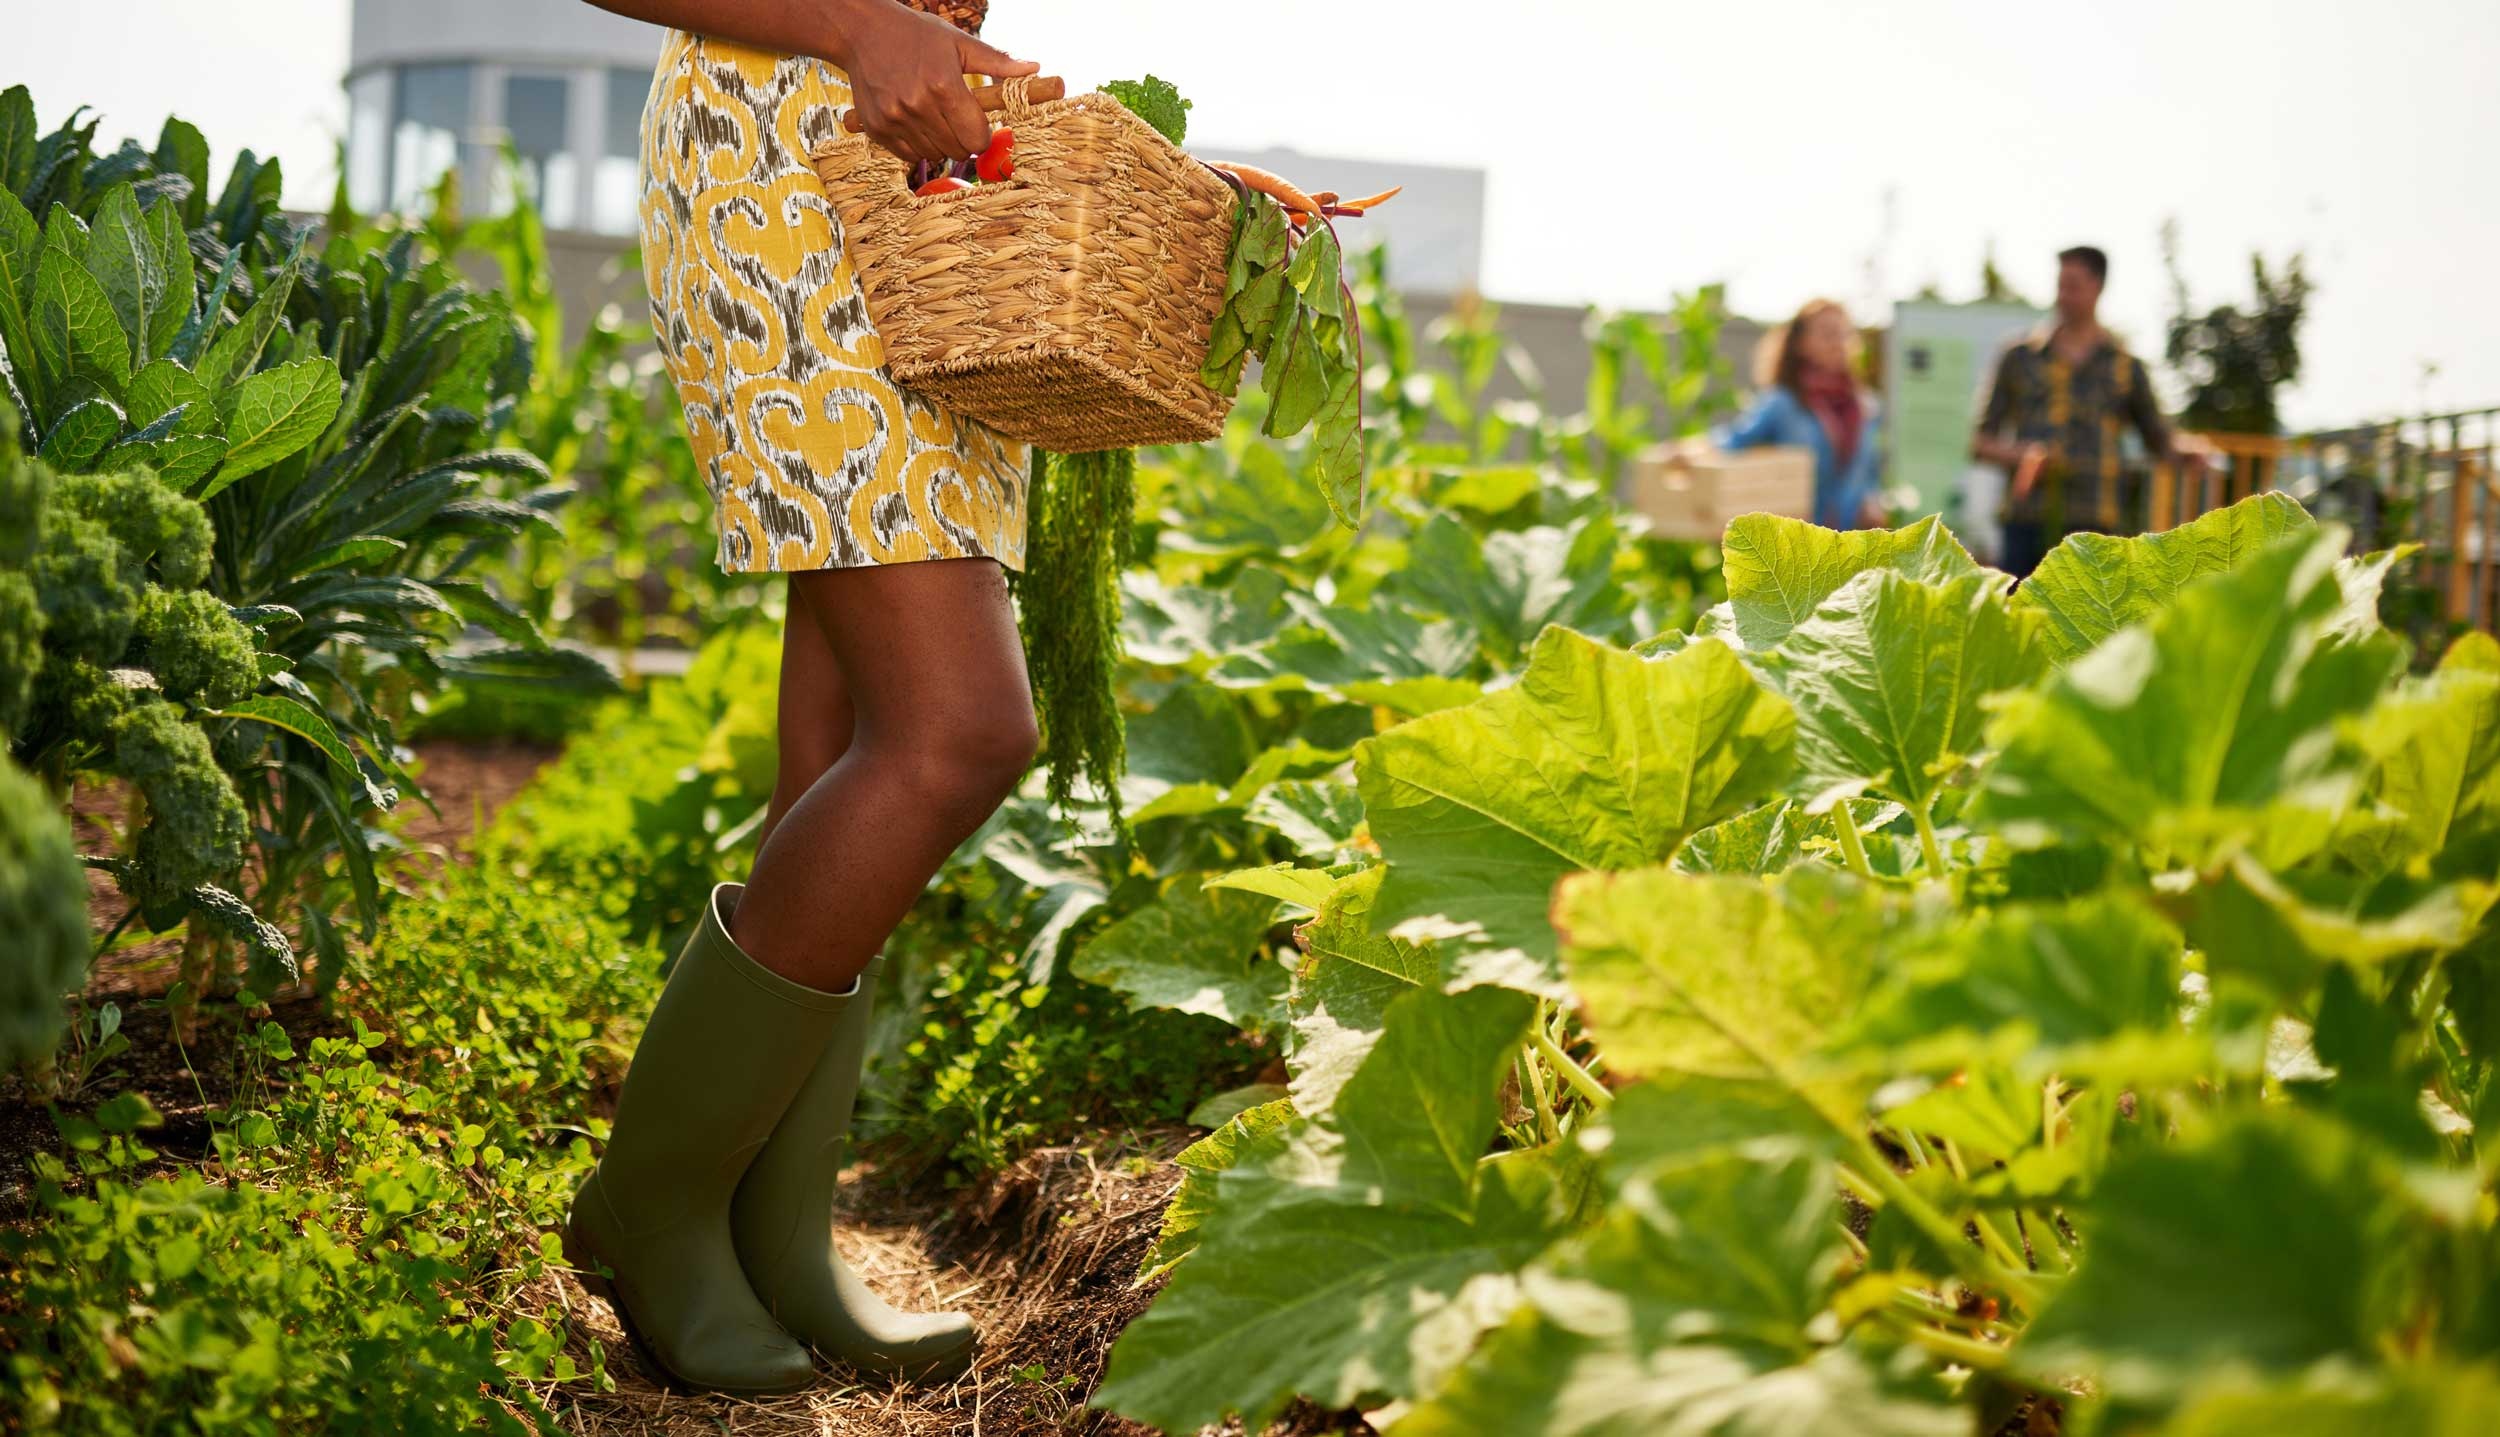 Young woman holds a basket full of vegetables in a community vegetable garden.